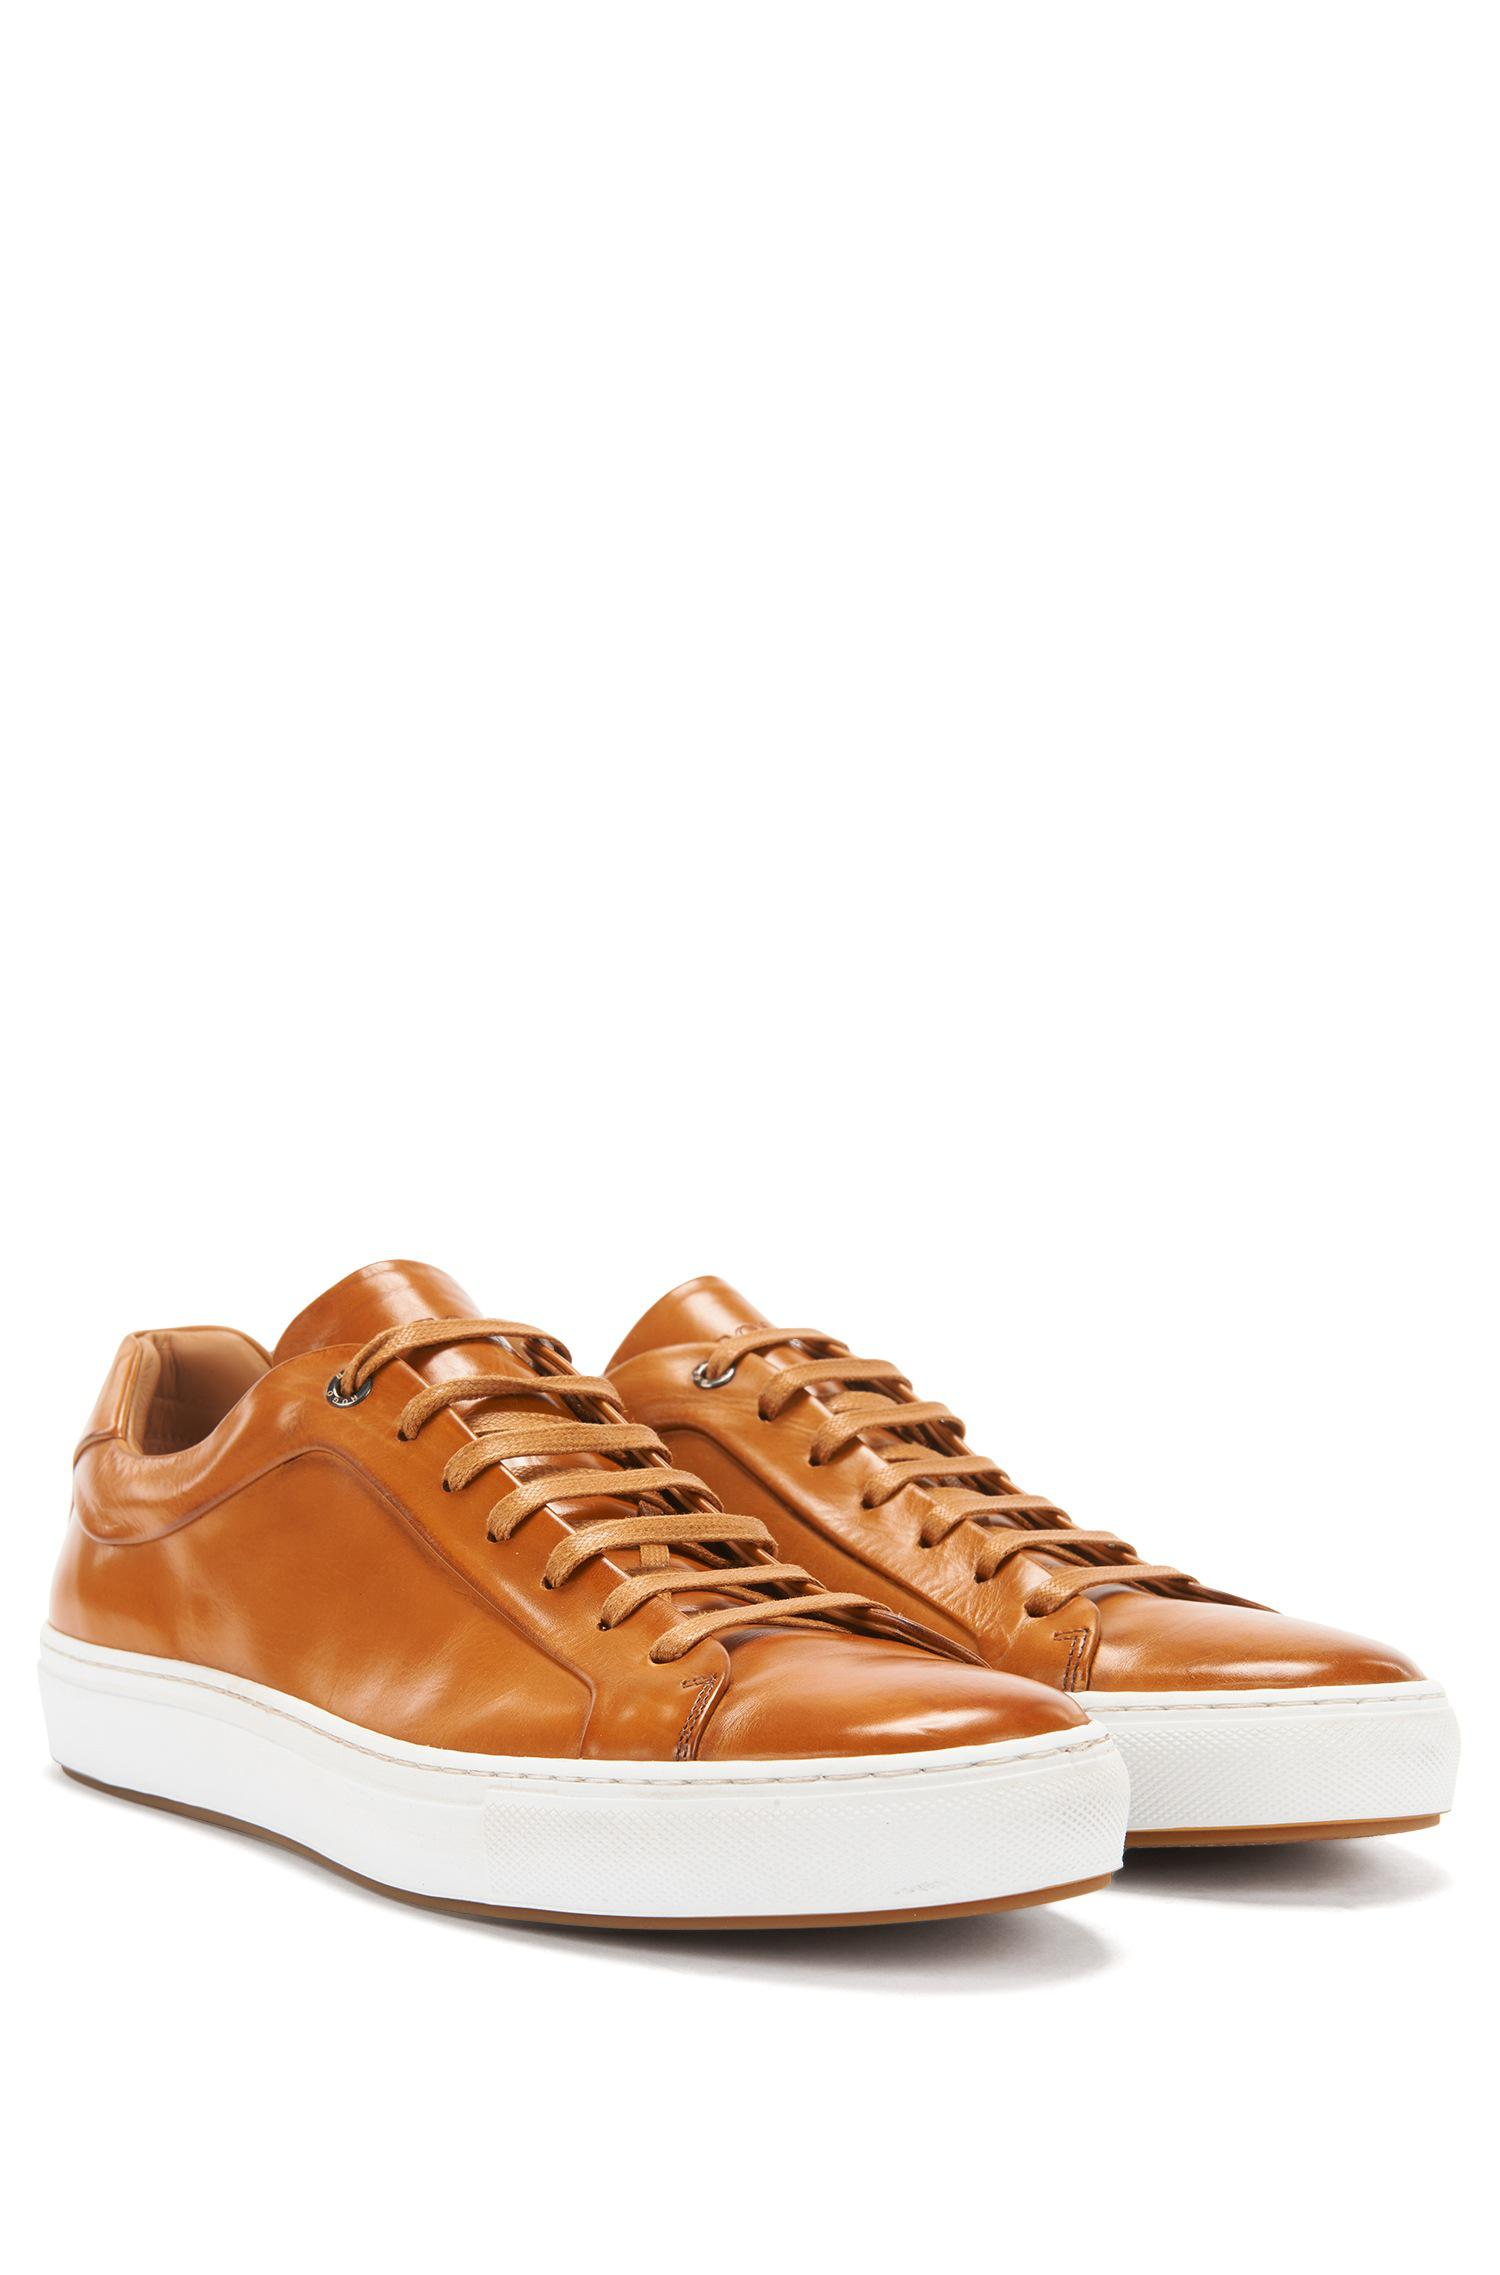 Tennis-style trainers in burnished leather BOSS SbiywqZ